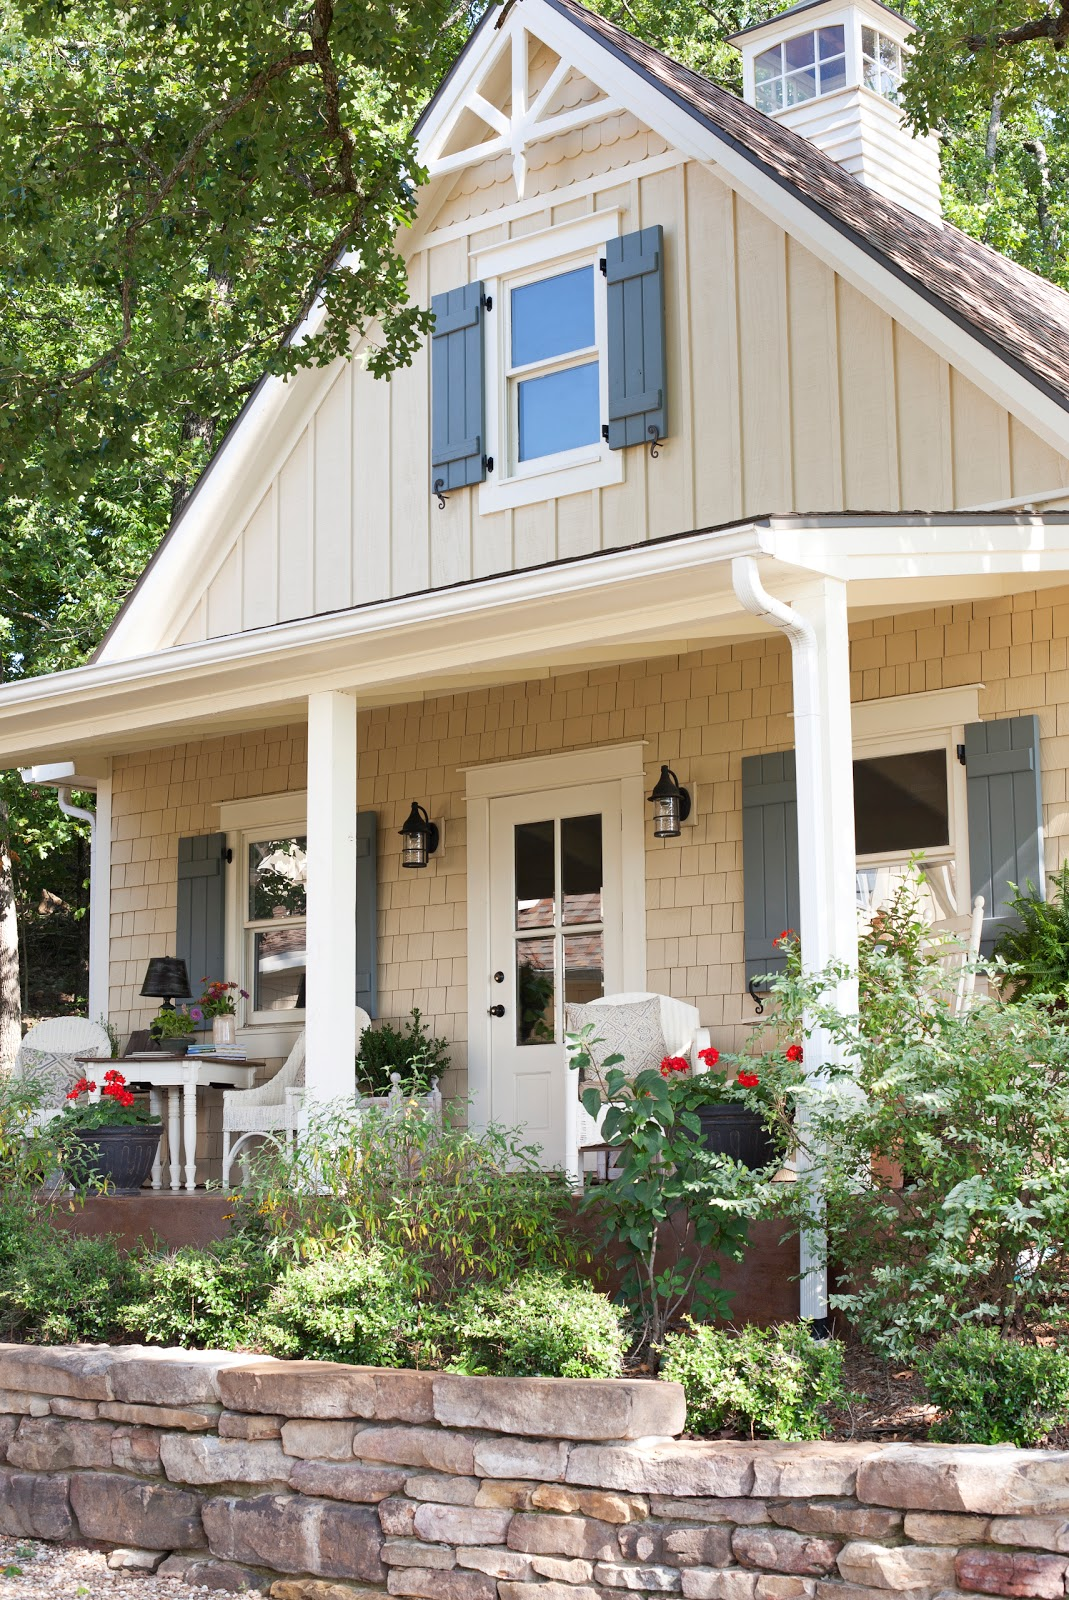 1000 images about exterior renovation ideas on pinterest for Small cottage exterior colors